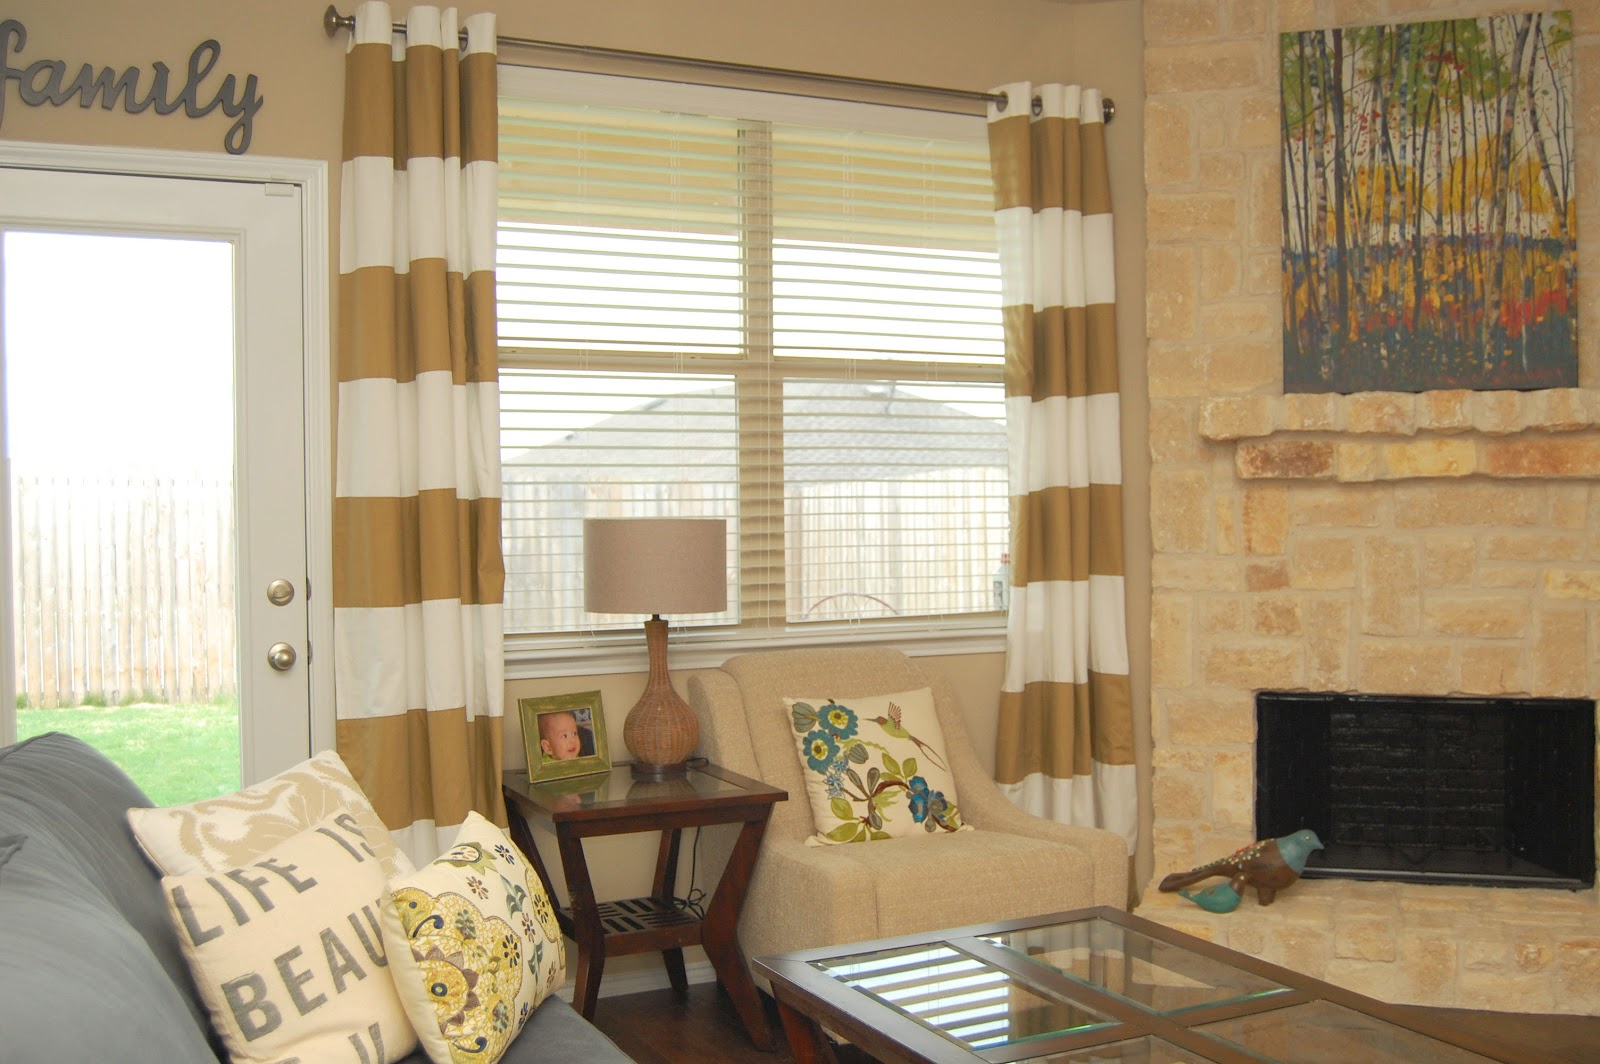 A Client And Good Friend Of Mine I Had Been Obsessed With All These Horizontal Striped Curtains We Kept Seeing On Pinterest